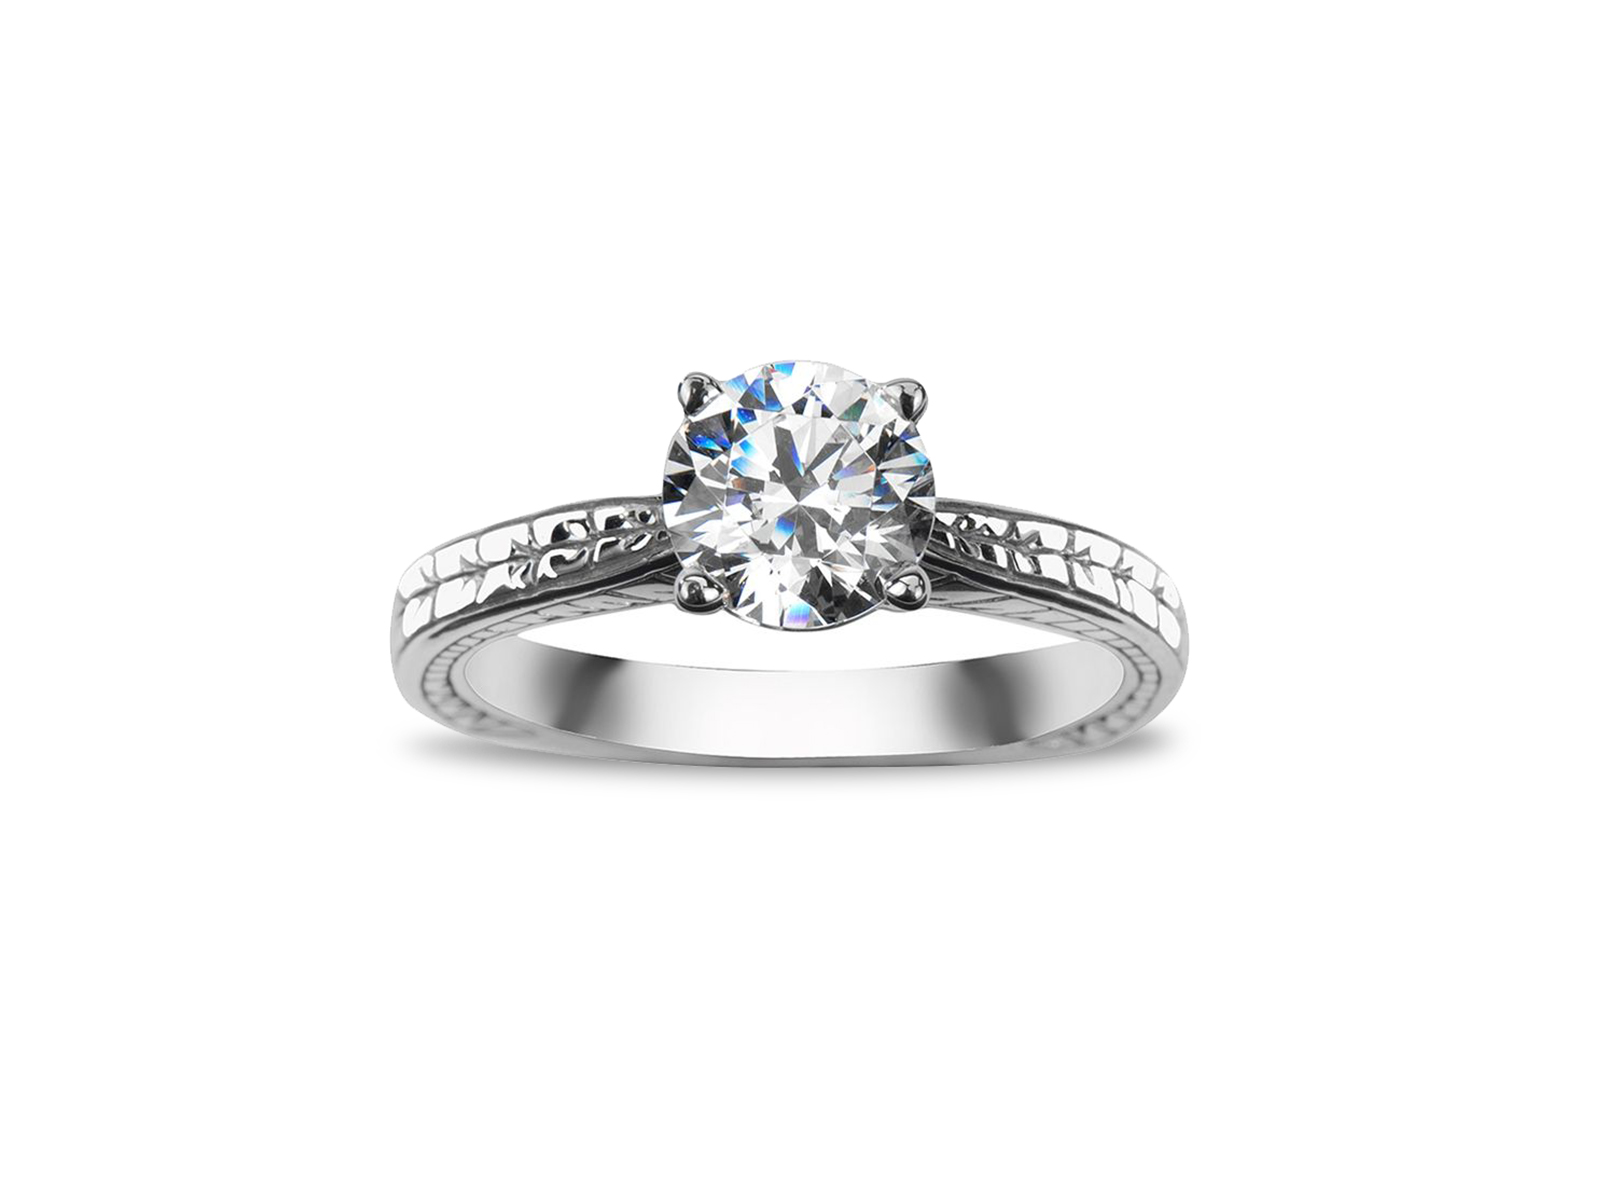 women's engagement ring in solitaire style